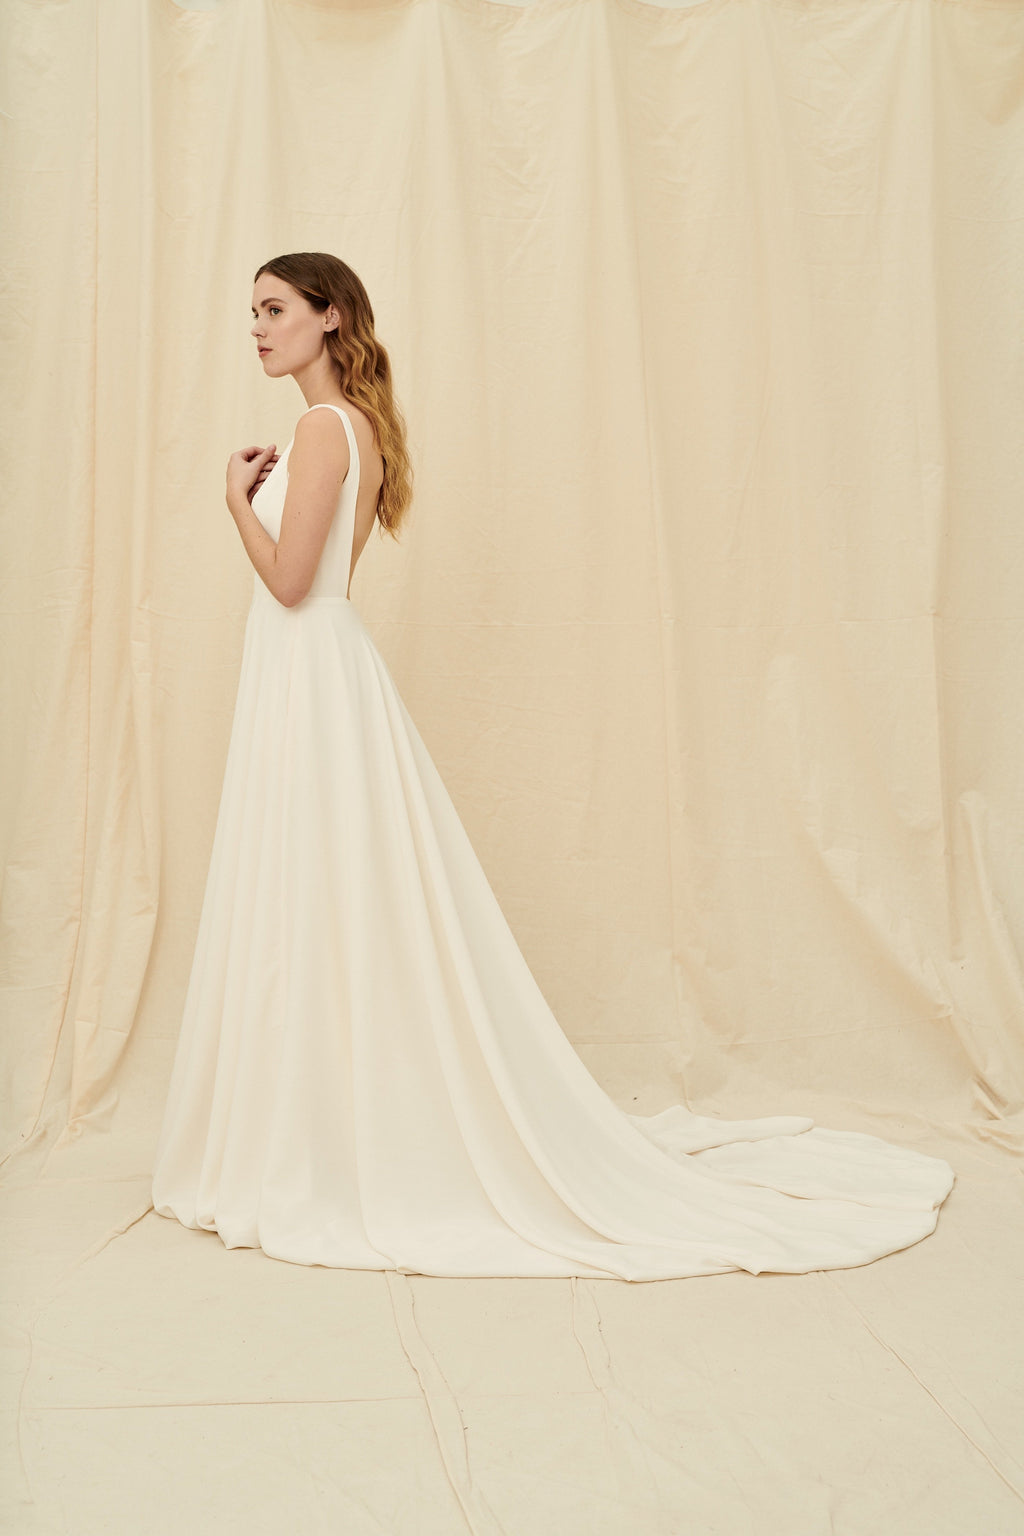 Backless crepe wedding dress with a long train and pockets